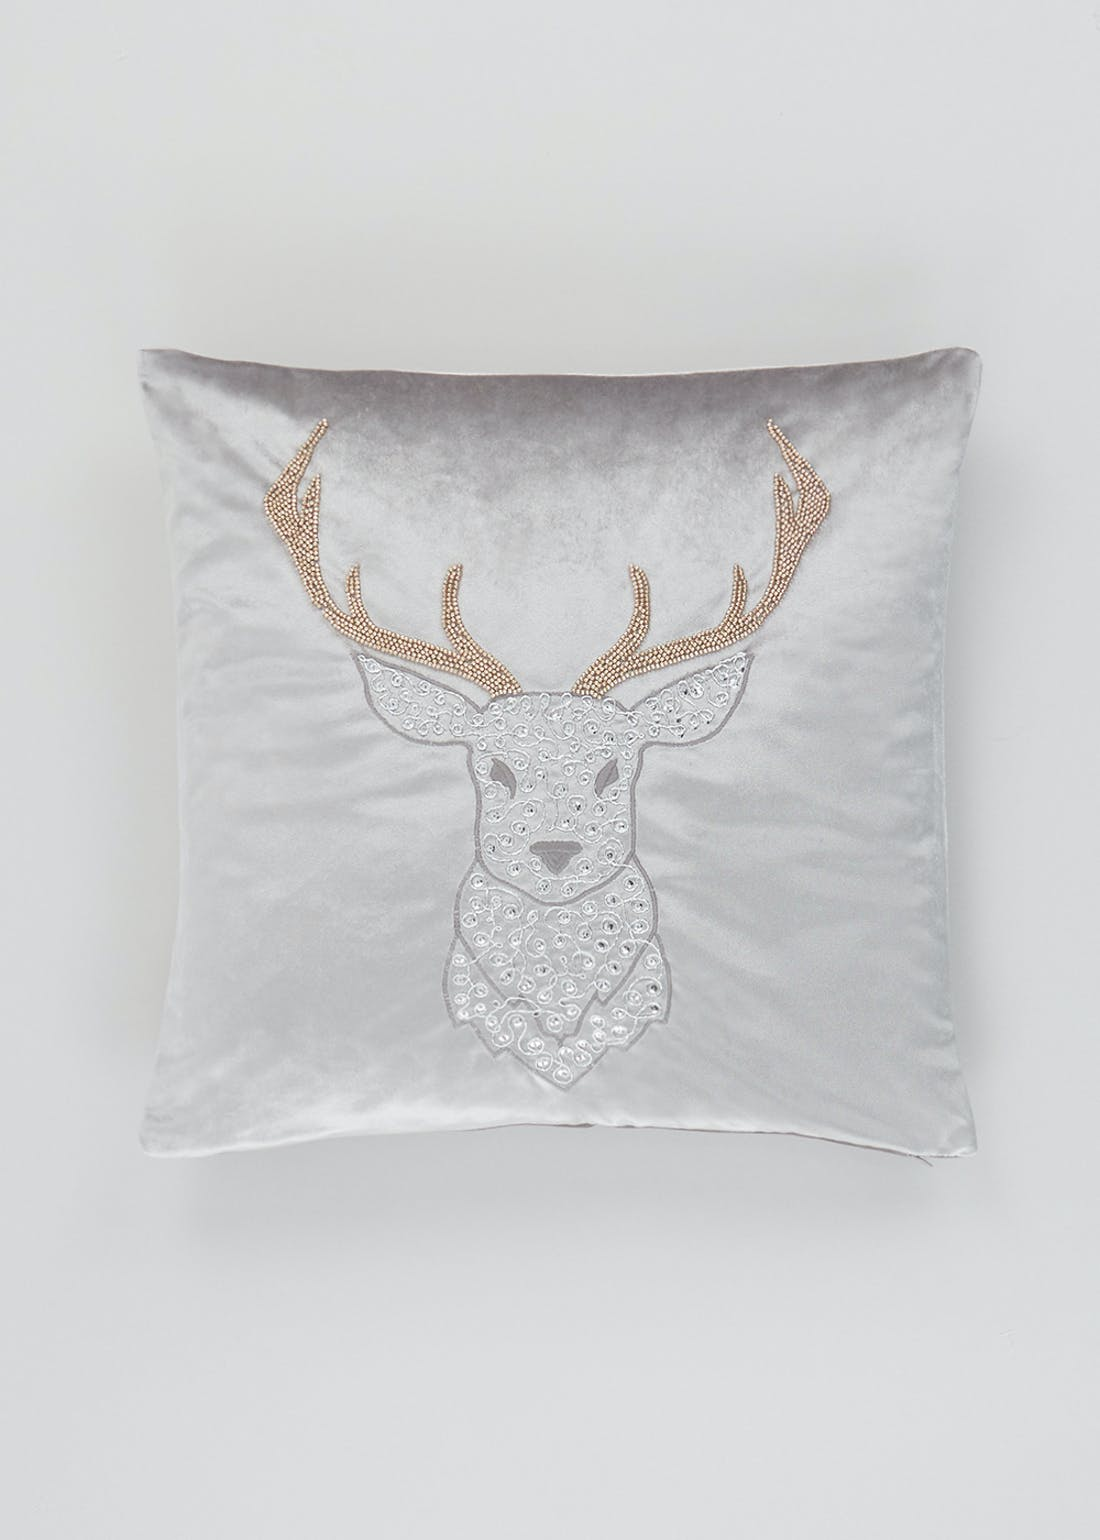 Jewelled Stag Cushion (46cm x 46cm)